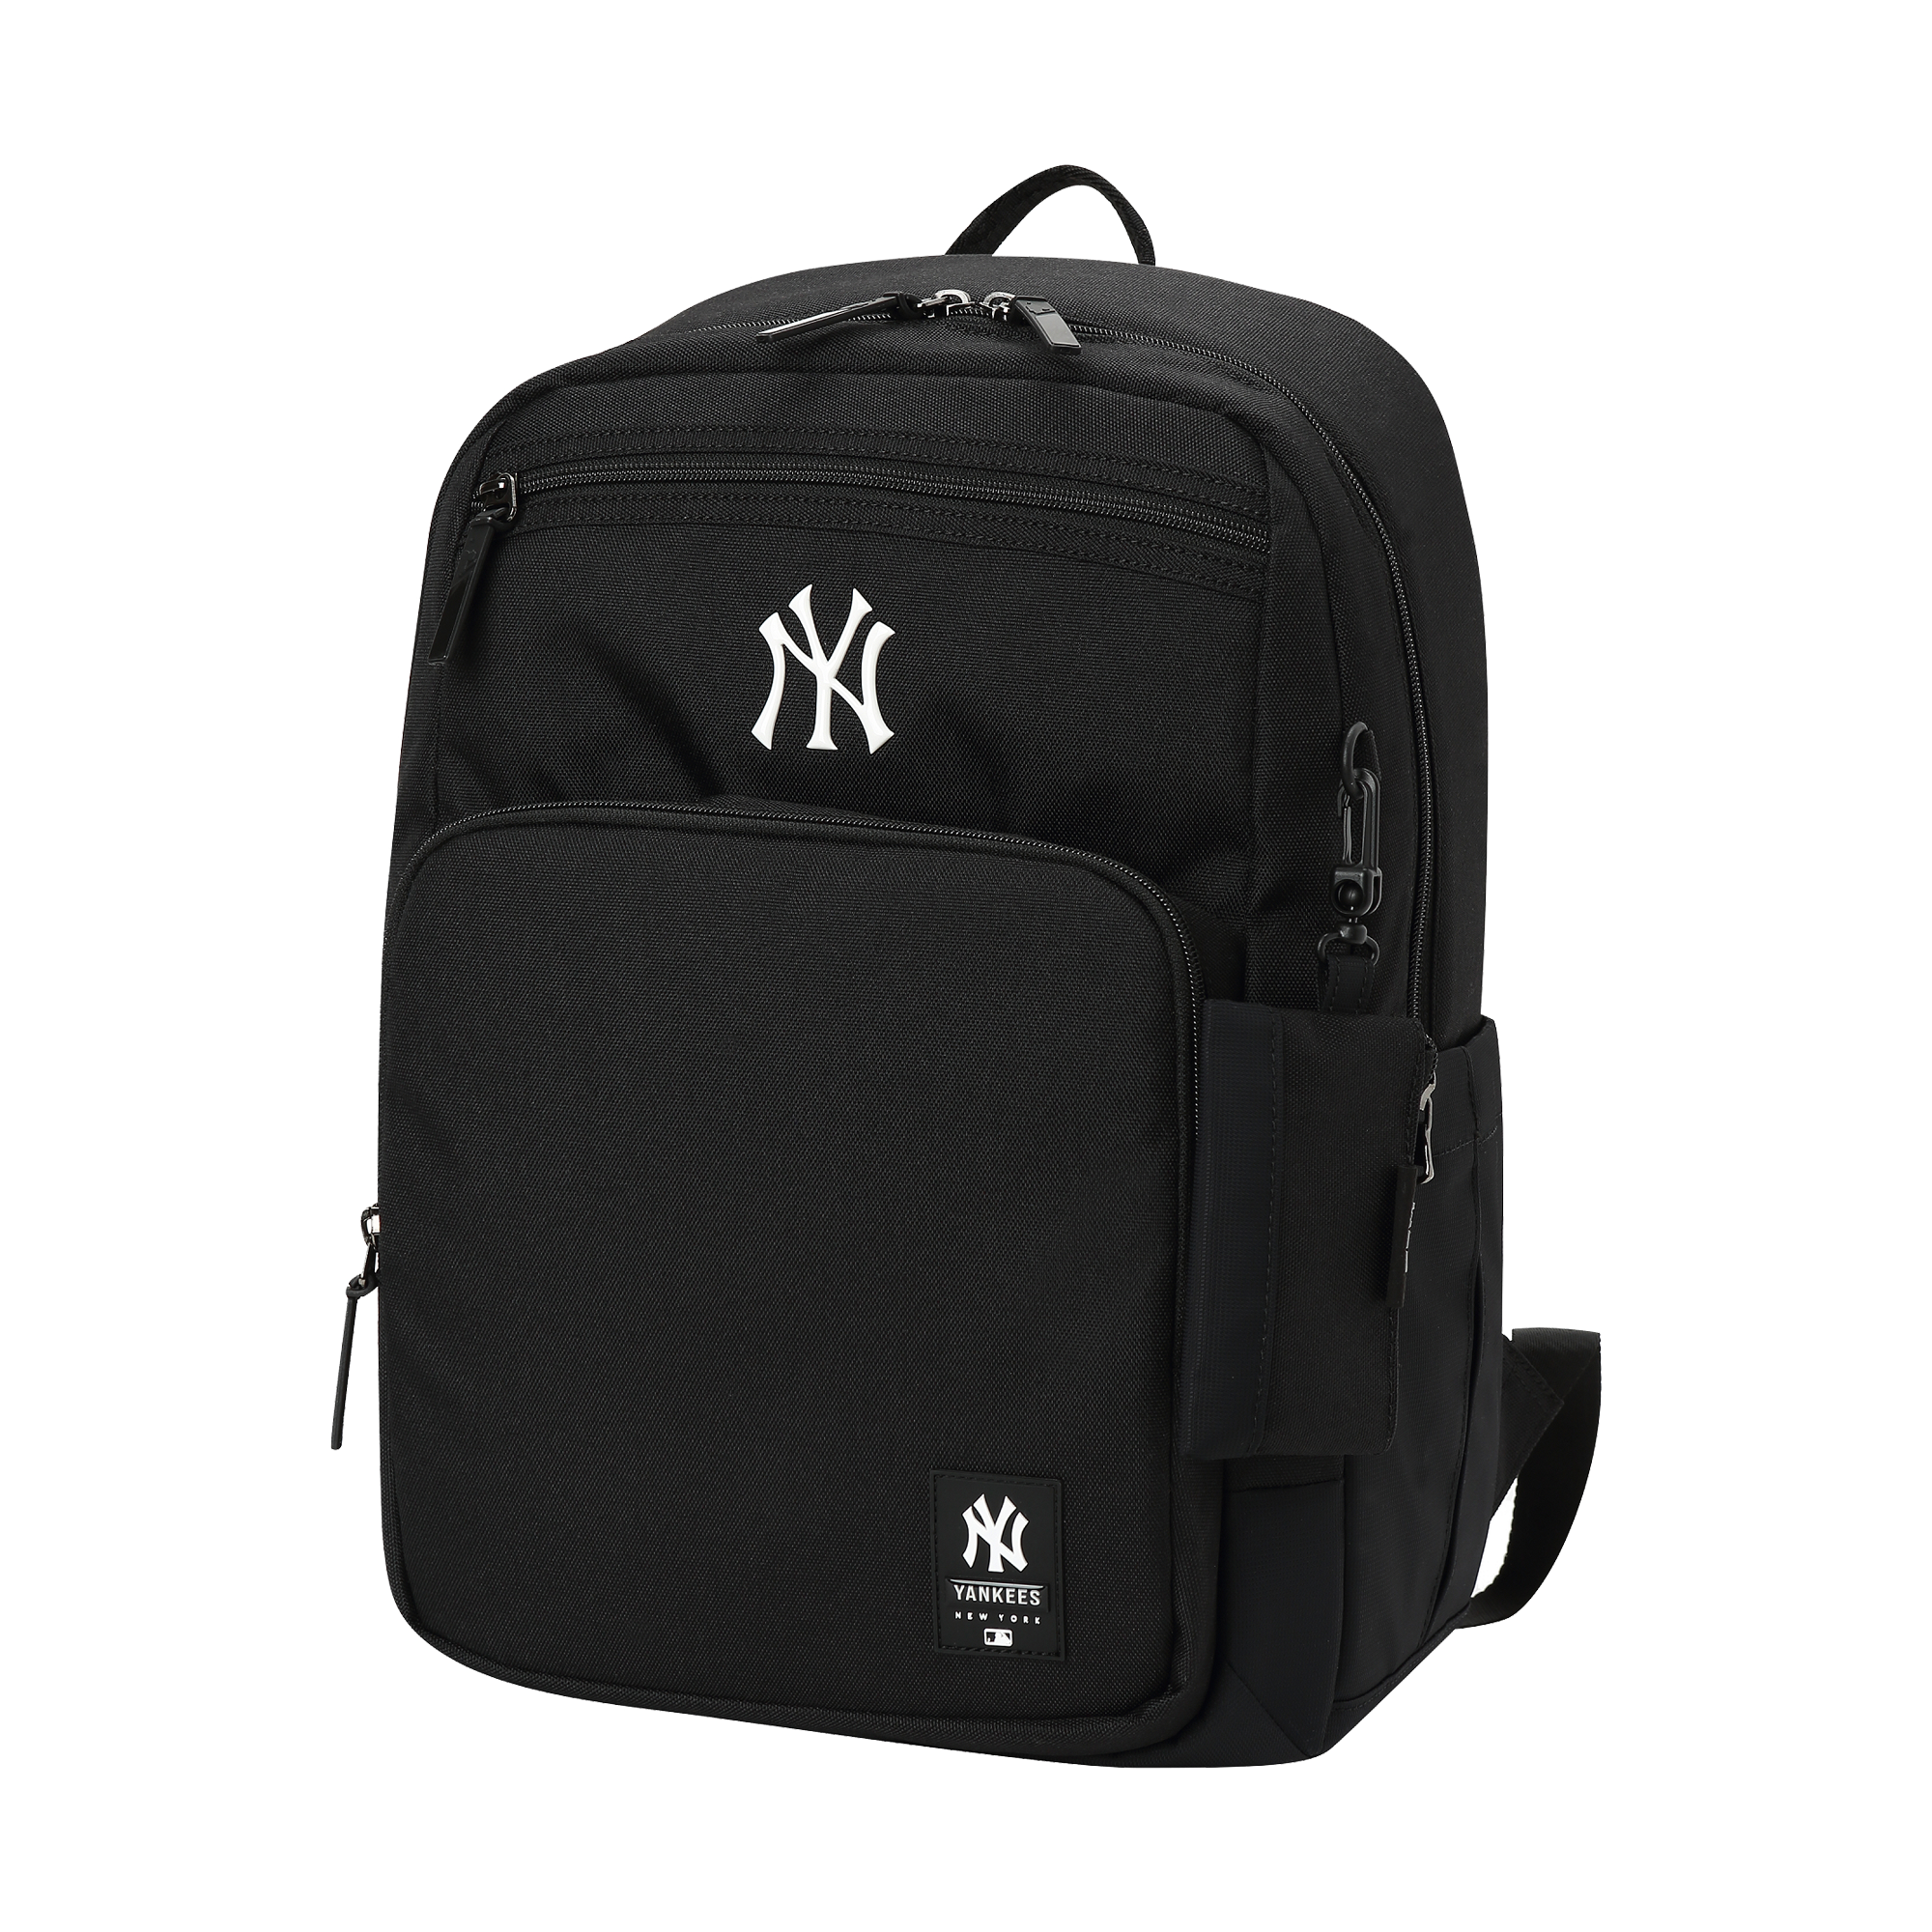 MLBKIDS SCHOOL BAG NEW YORK YANKEES SUPERFAN SIMPLE LOGO BACKPACK